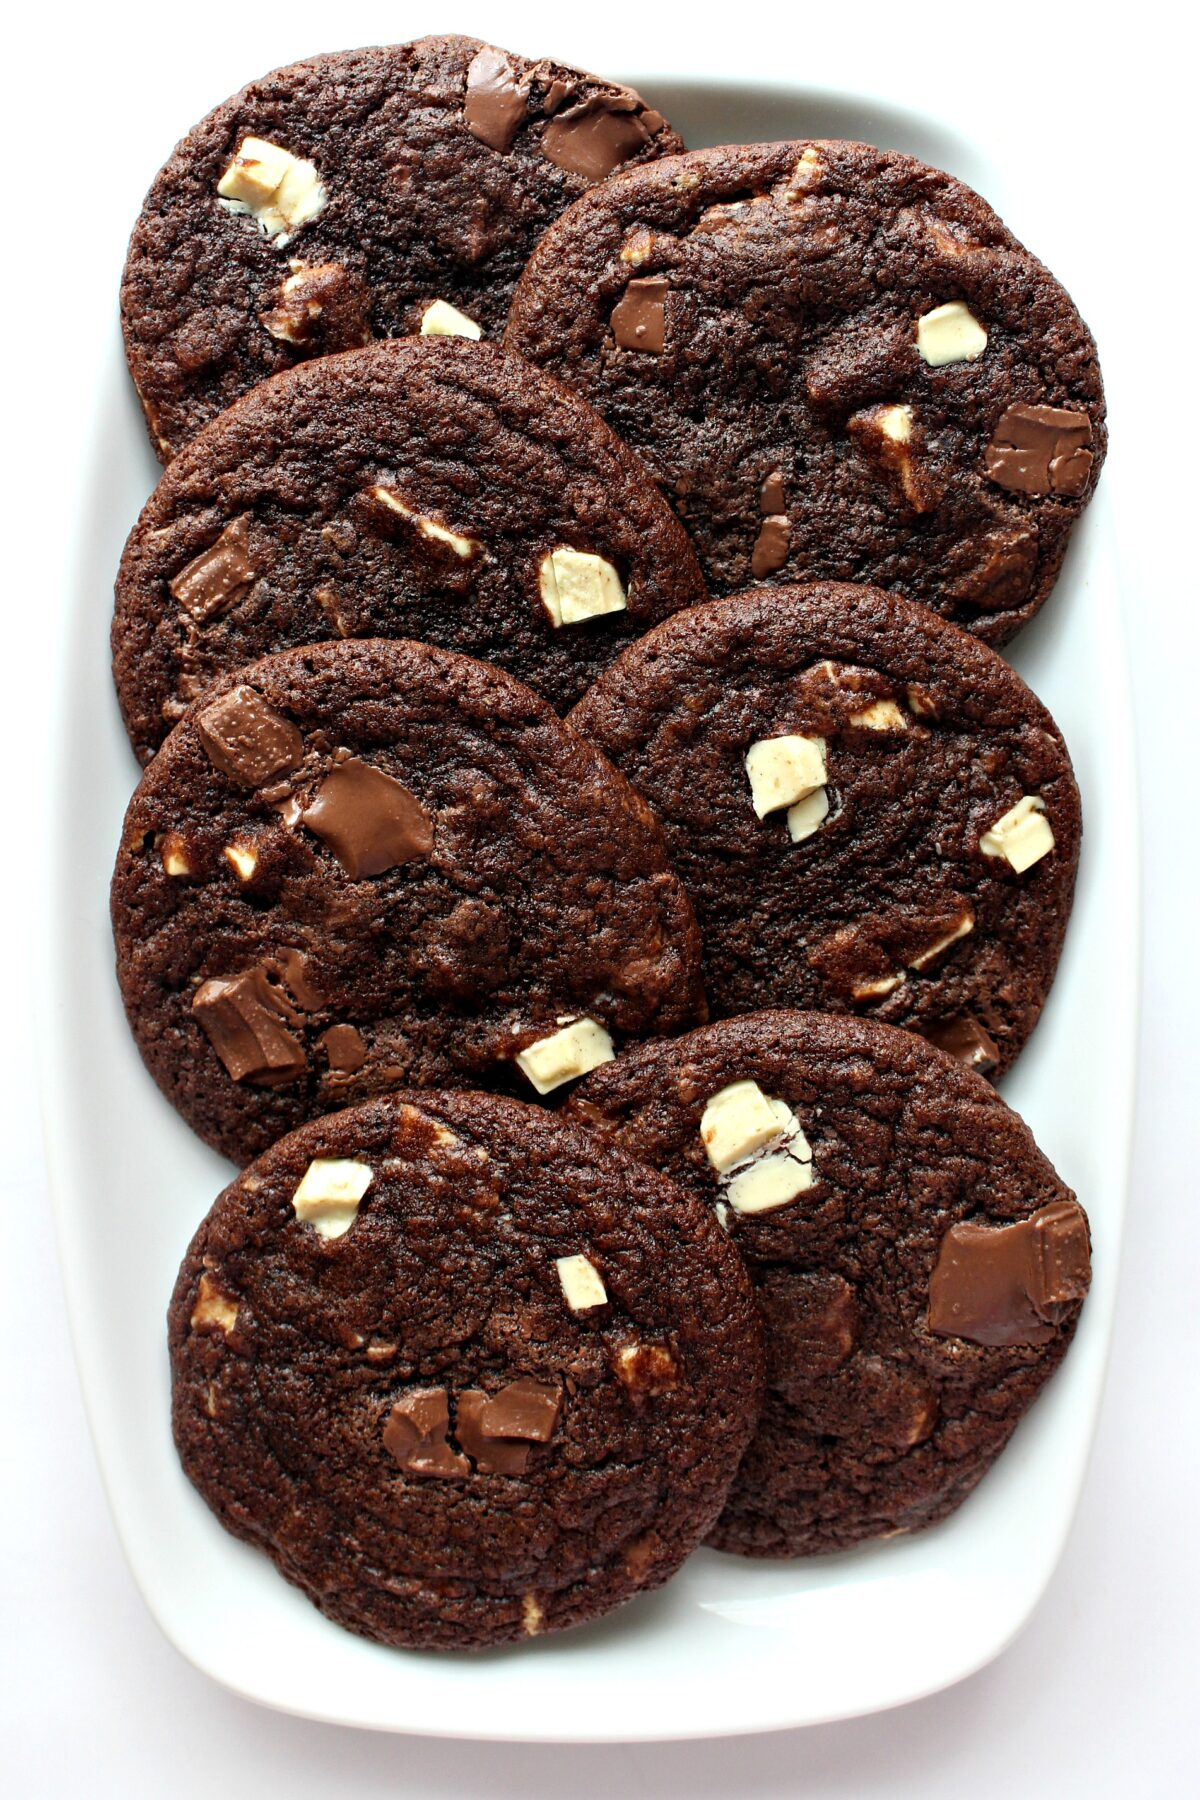 Chocolate cookies with white and milk chocolate chunks on top on a white serving platter.